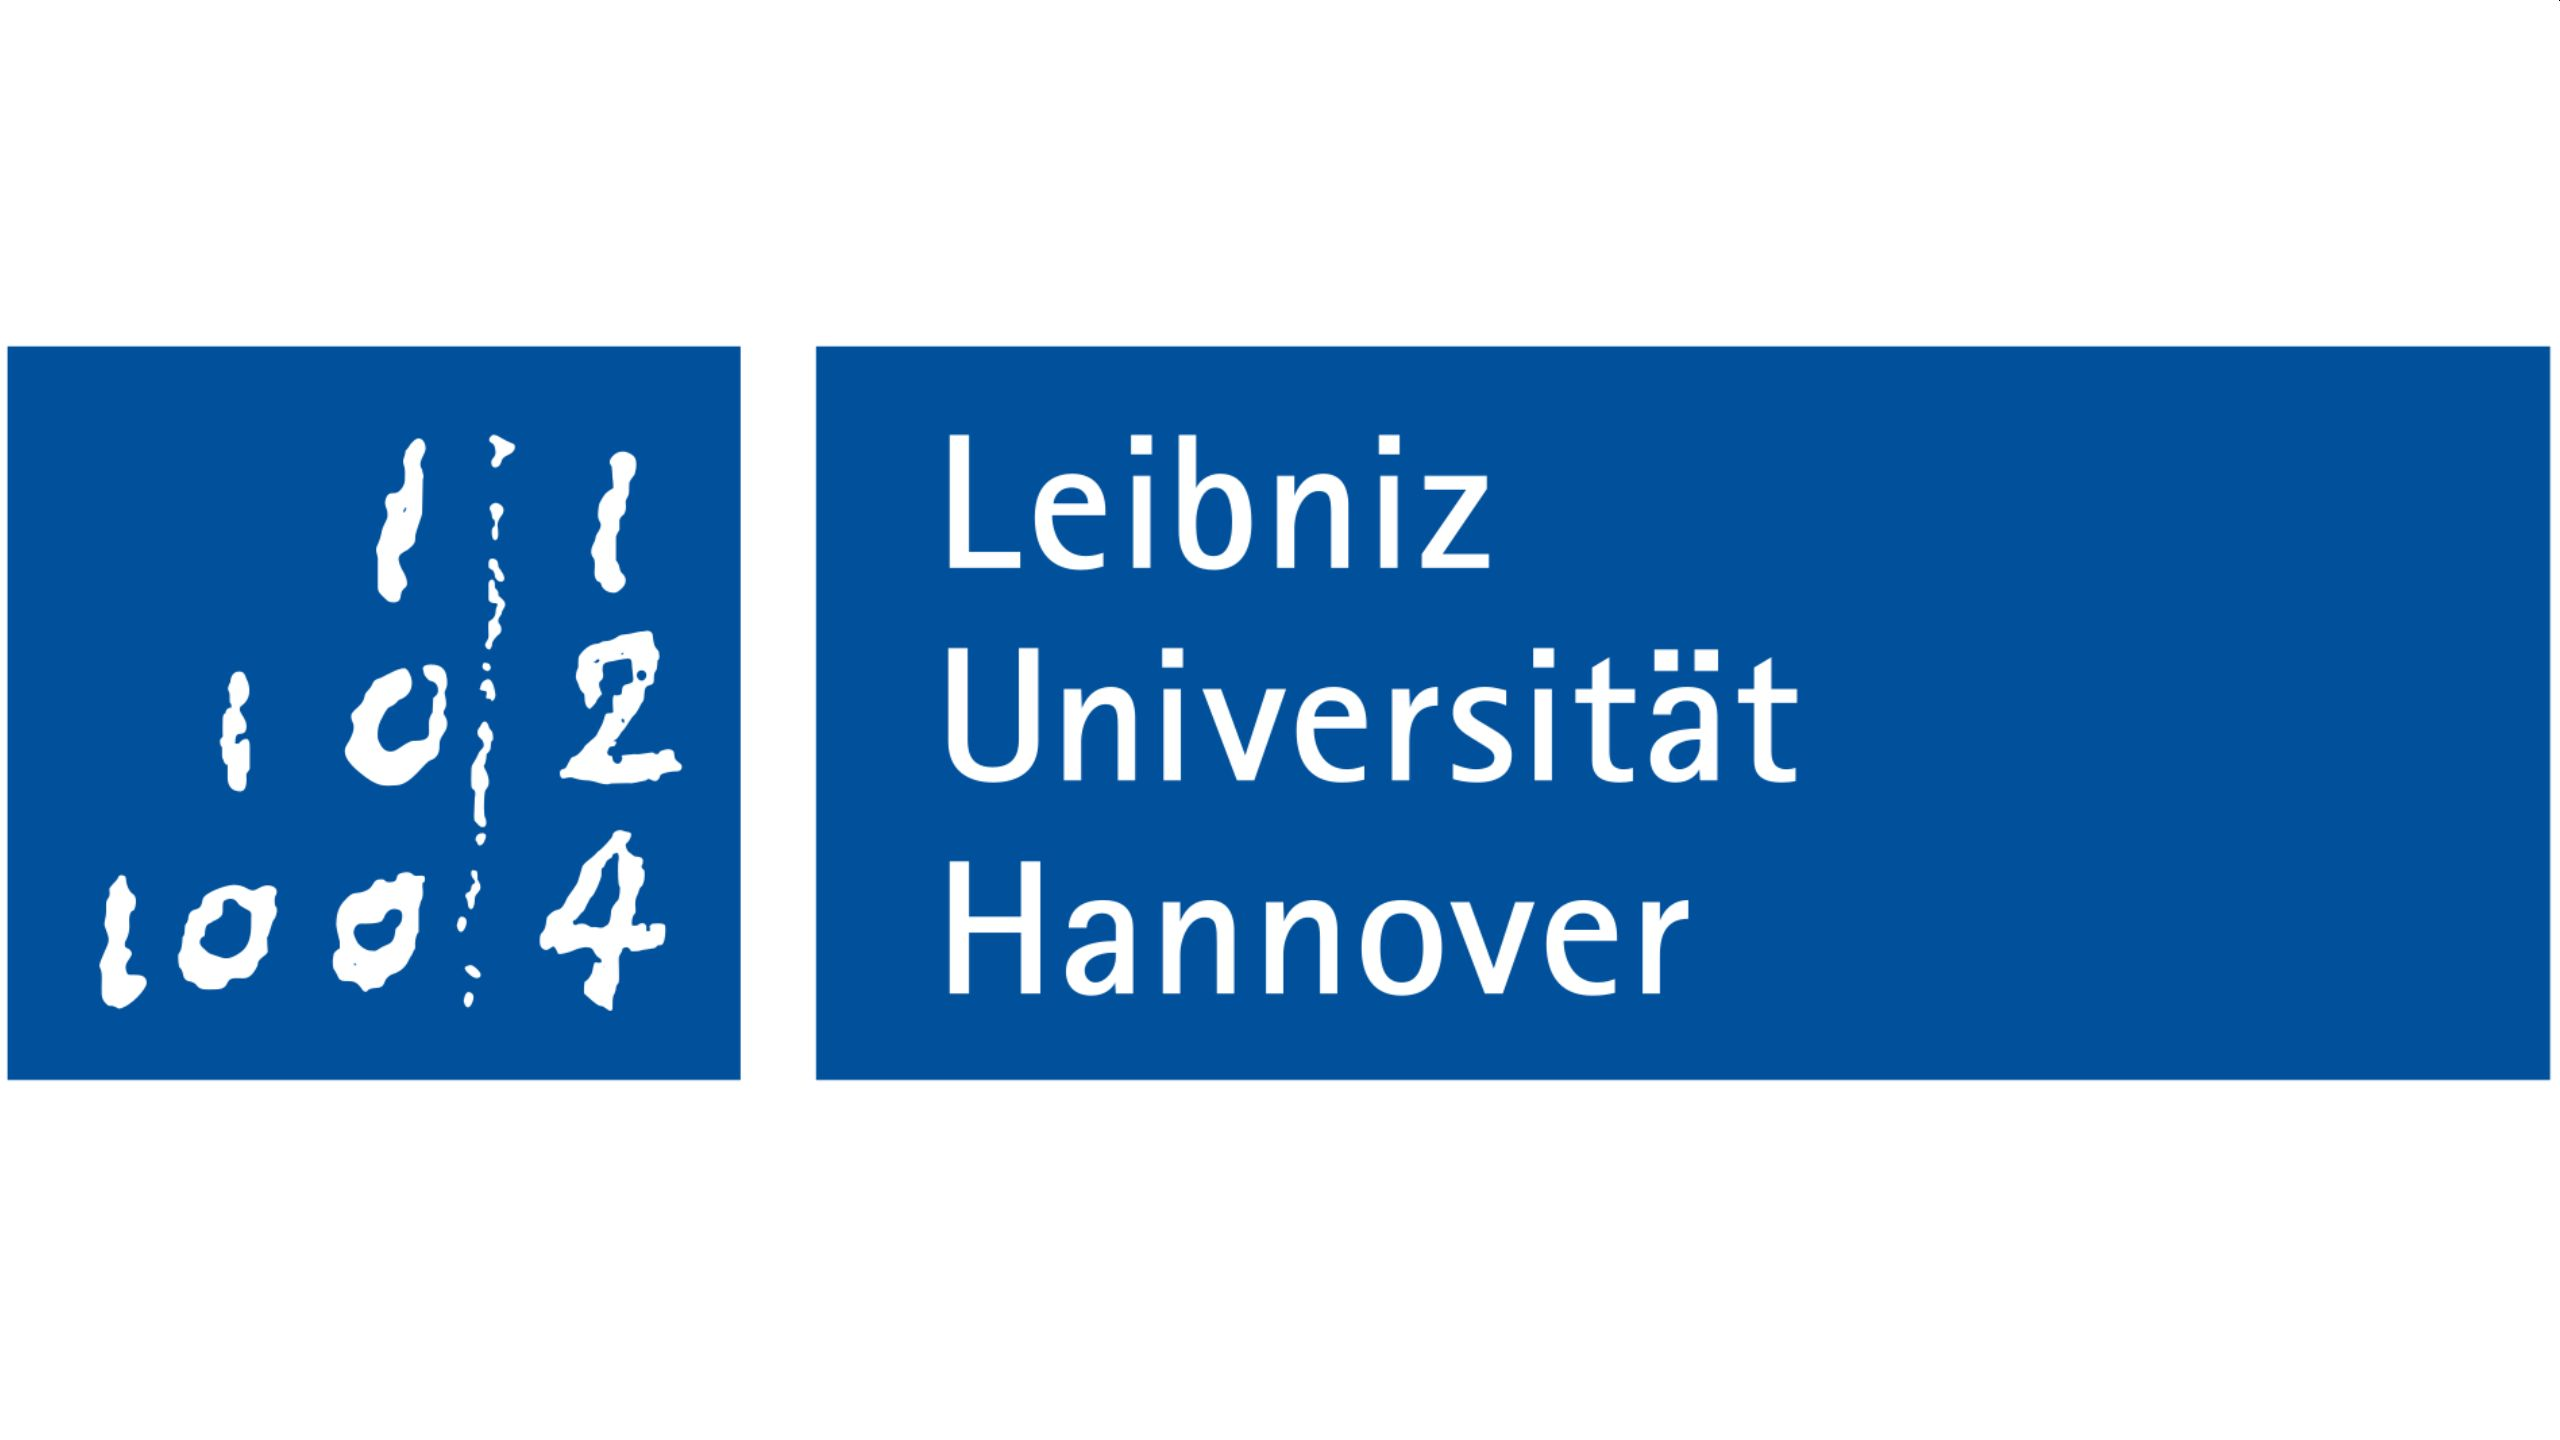 event karriere Hannover Uni 16 9